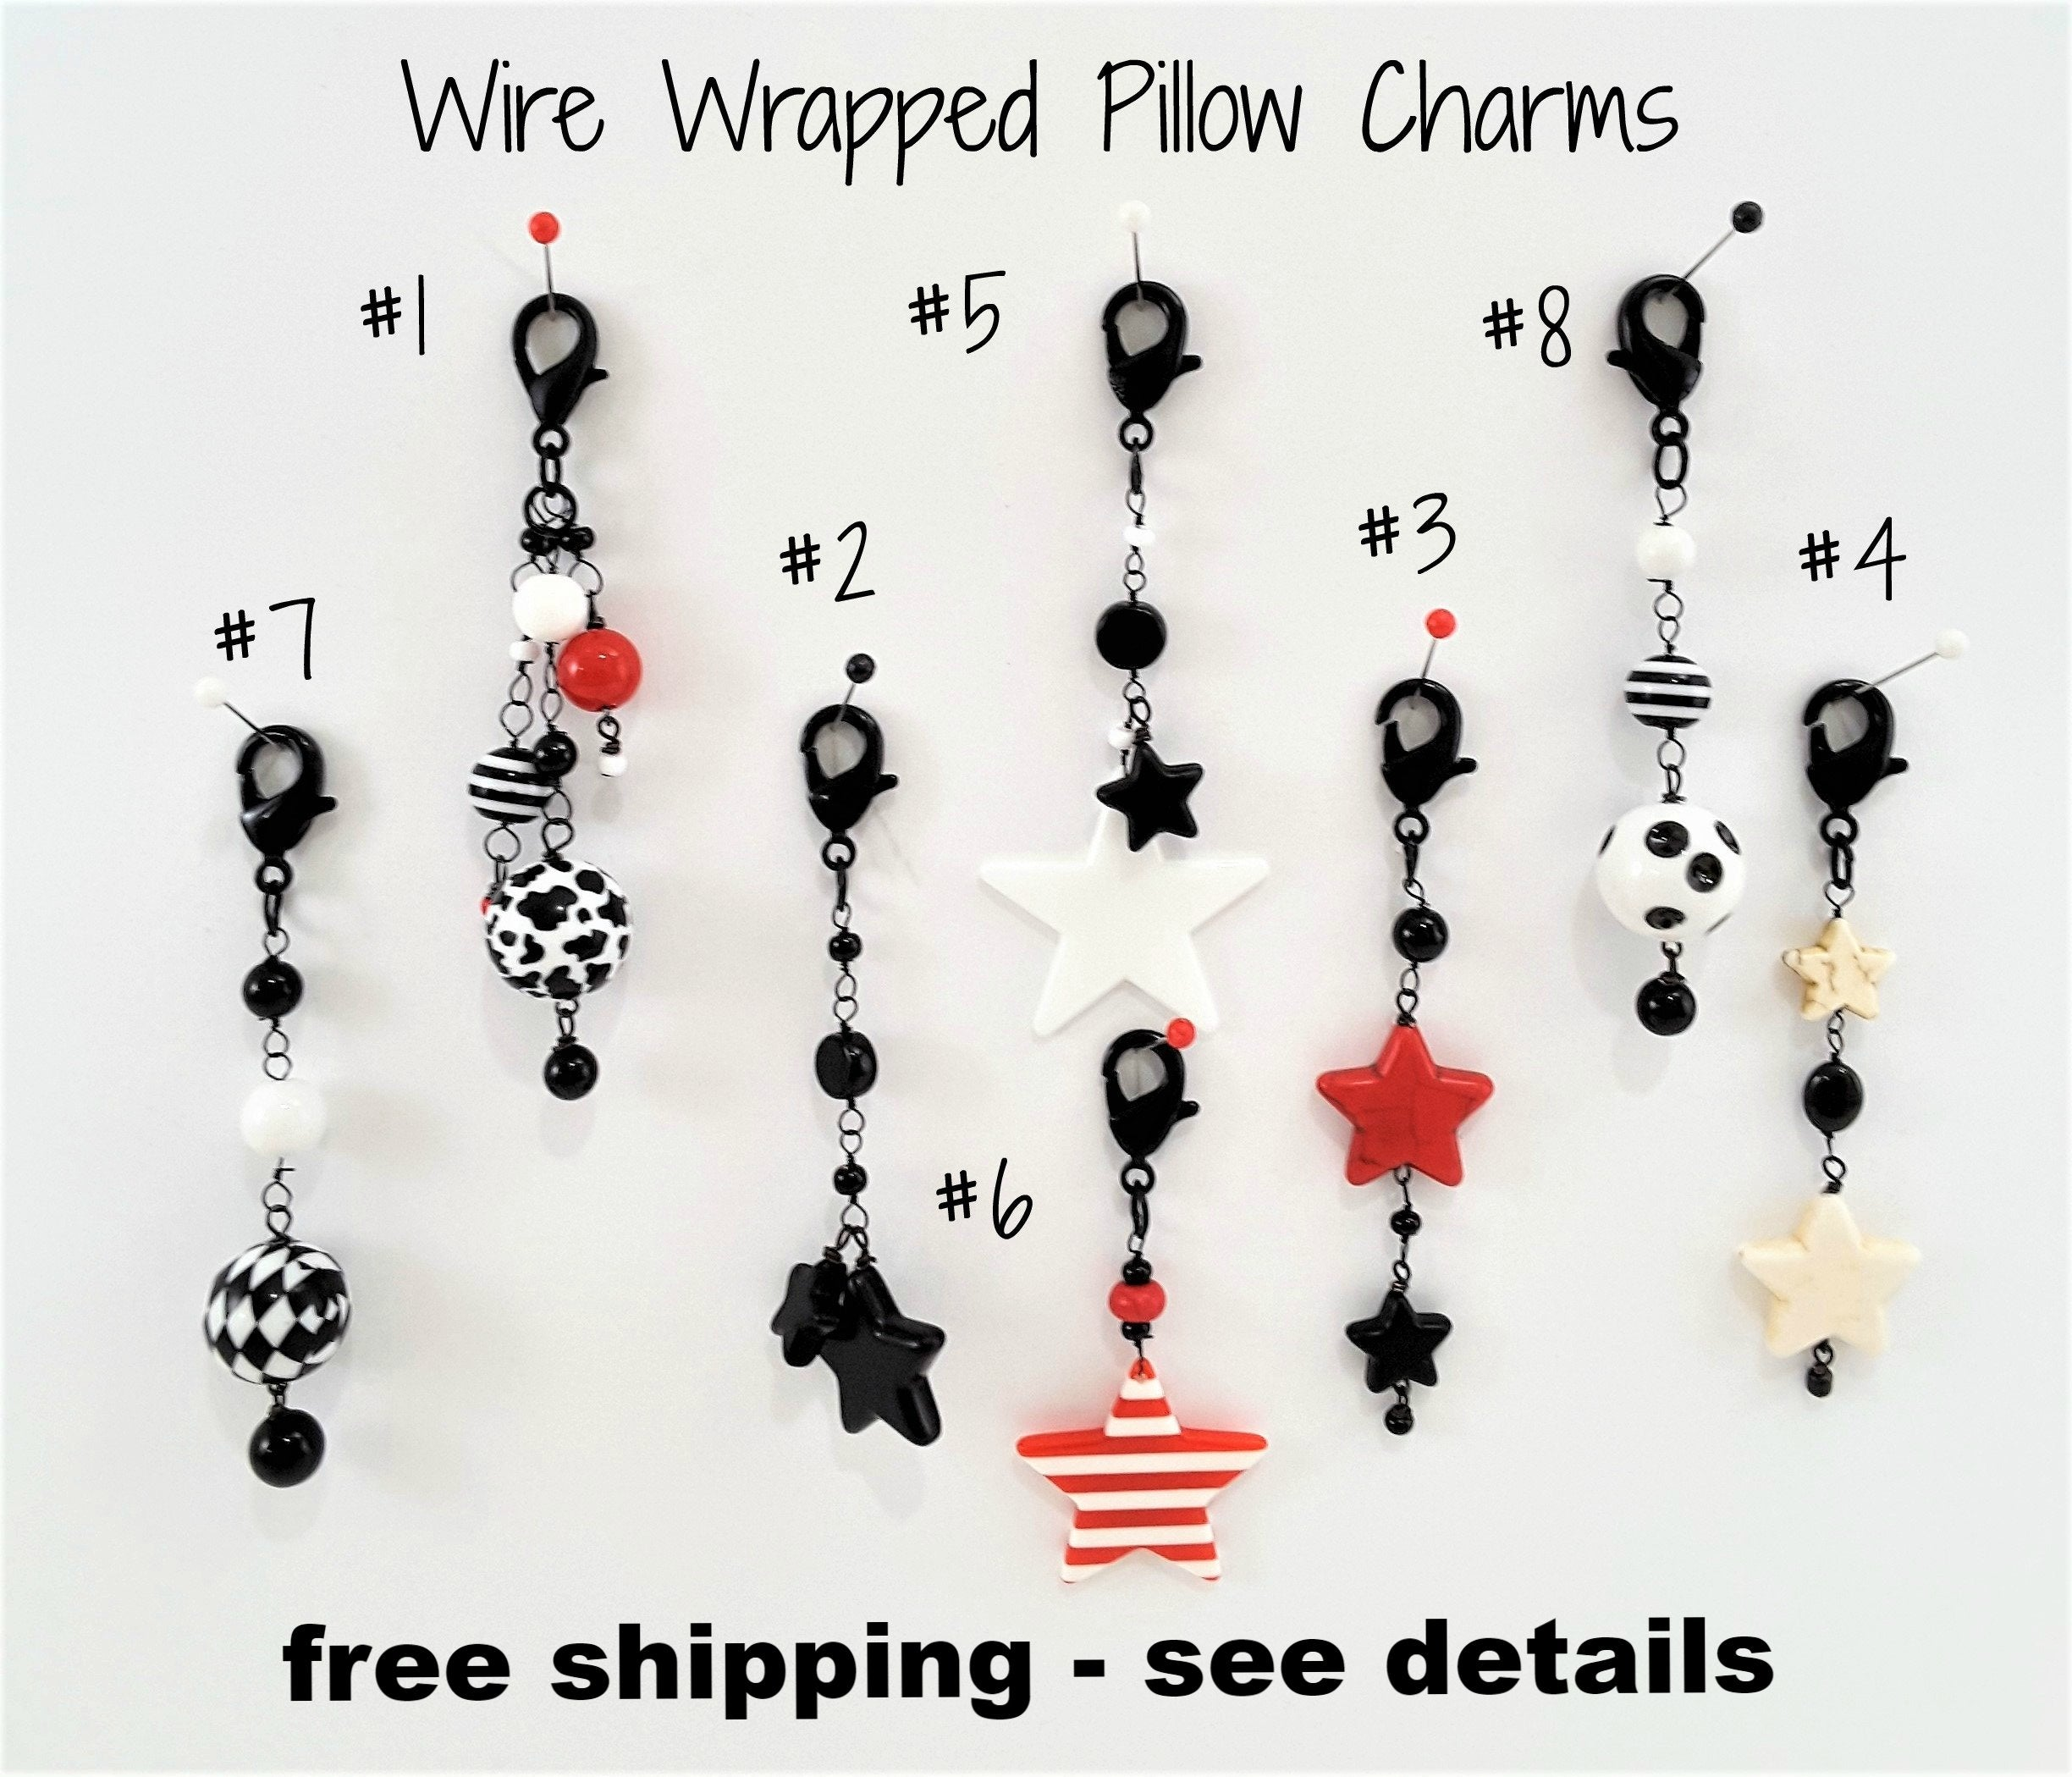 Wire-wrapped Purse, Backpack, Daily Planner or Pillow Charms #2 - The Last Word Bish